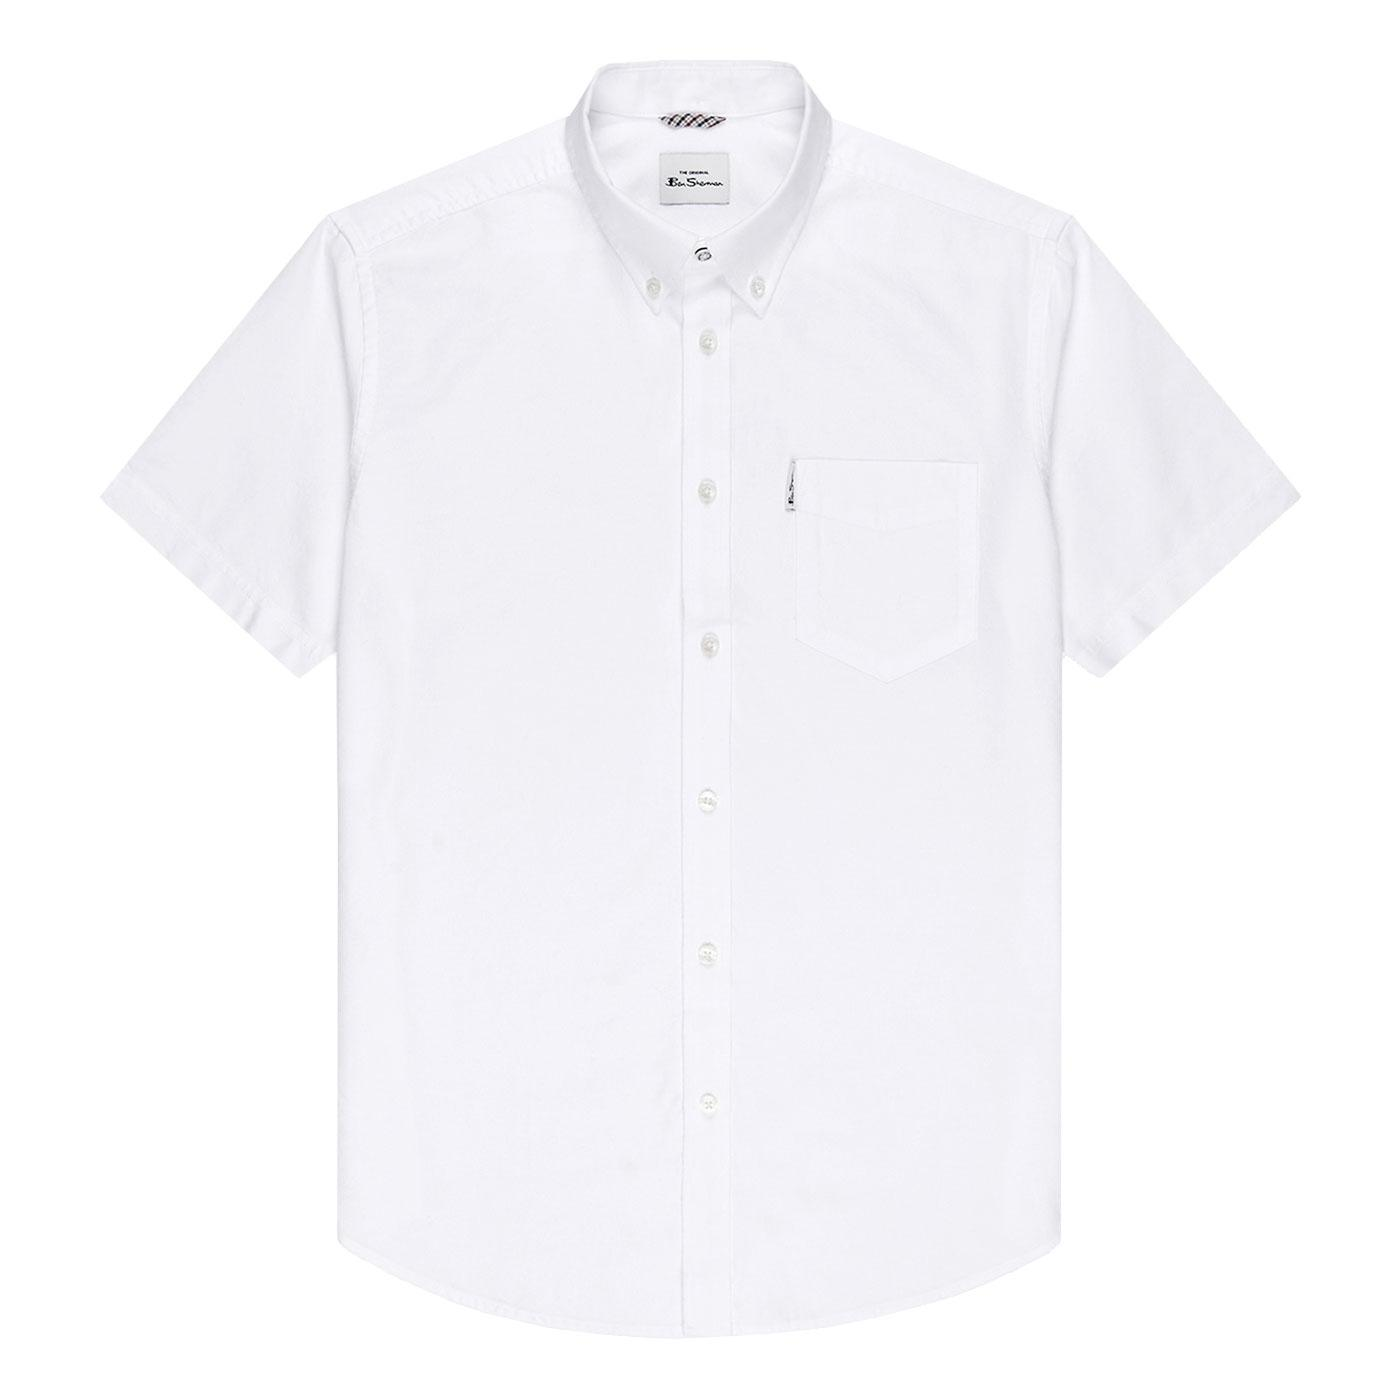 BEN SHERMAN Retro Short Sleeve Oxford Shirt WHITE